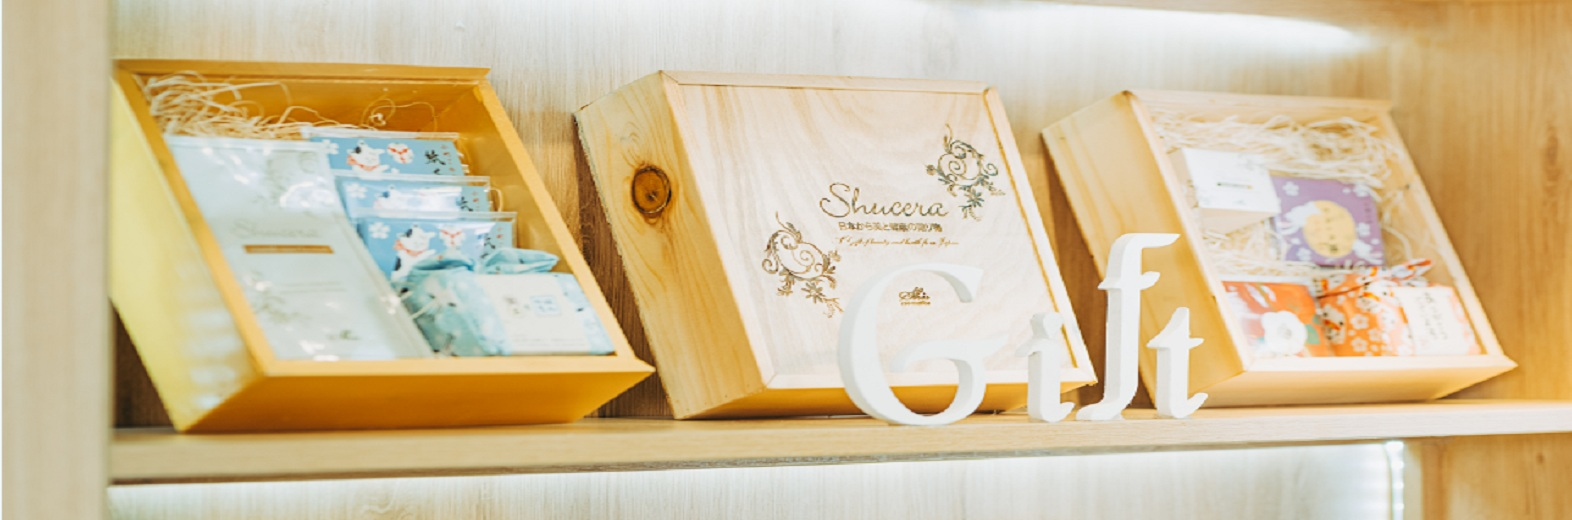 SHUCERA VN Offical Site-A Gift Of Beauty and Heath From Japan